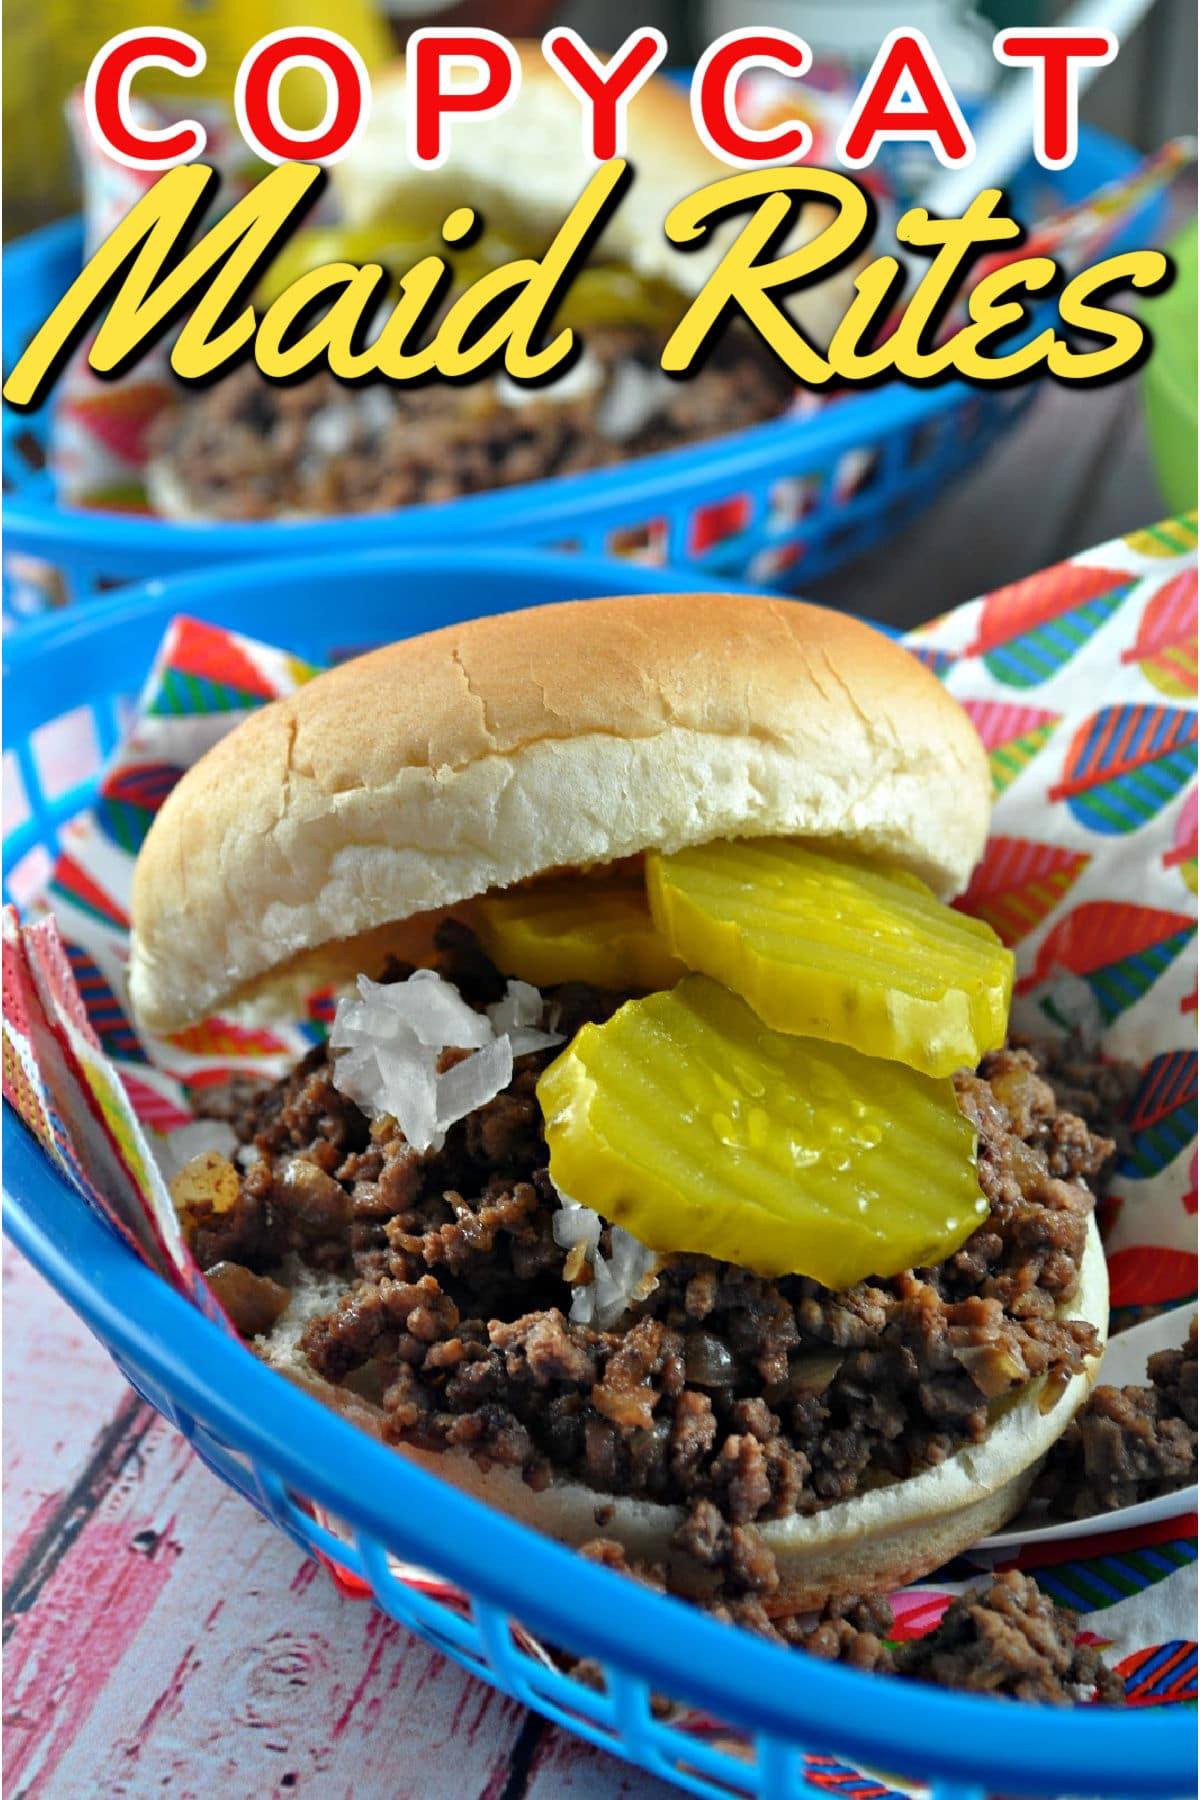 The Maid Rite is a loose meat sandwich - and this Iowa Maid Rite Copycat Recipe will teach you the secrets of my favorite hometown food! via @foodhussy